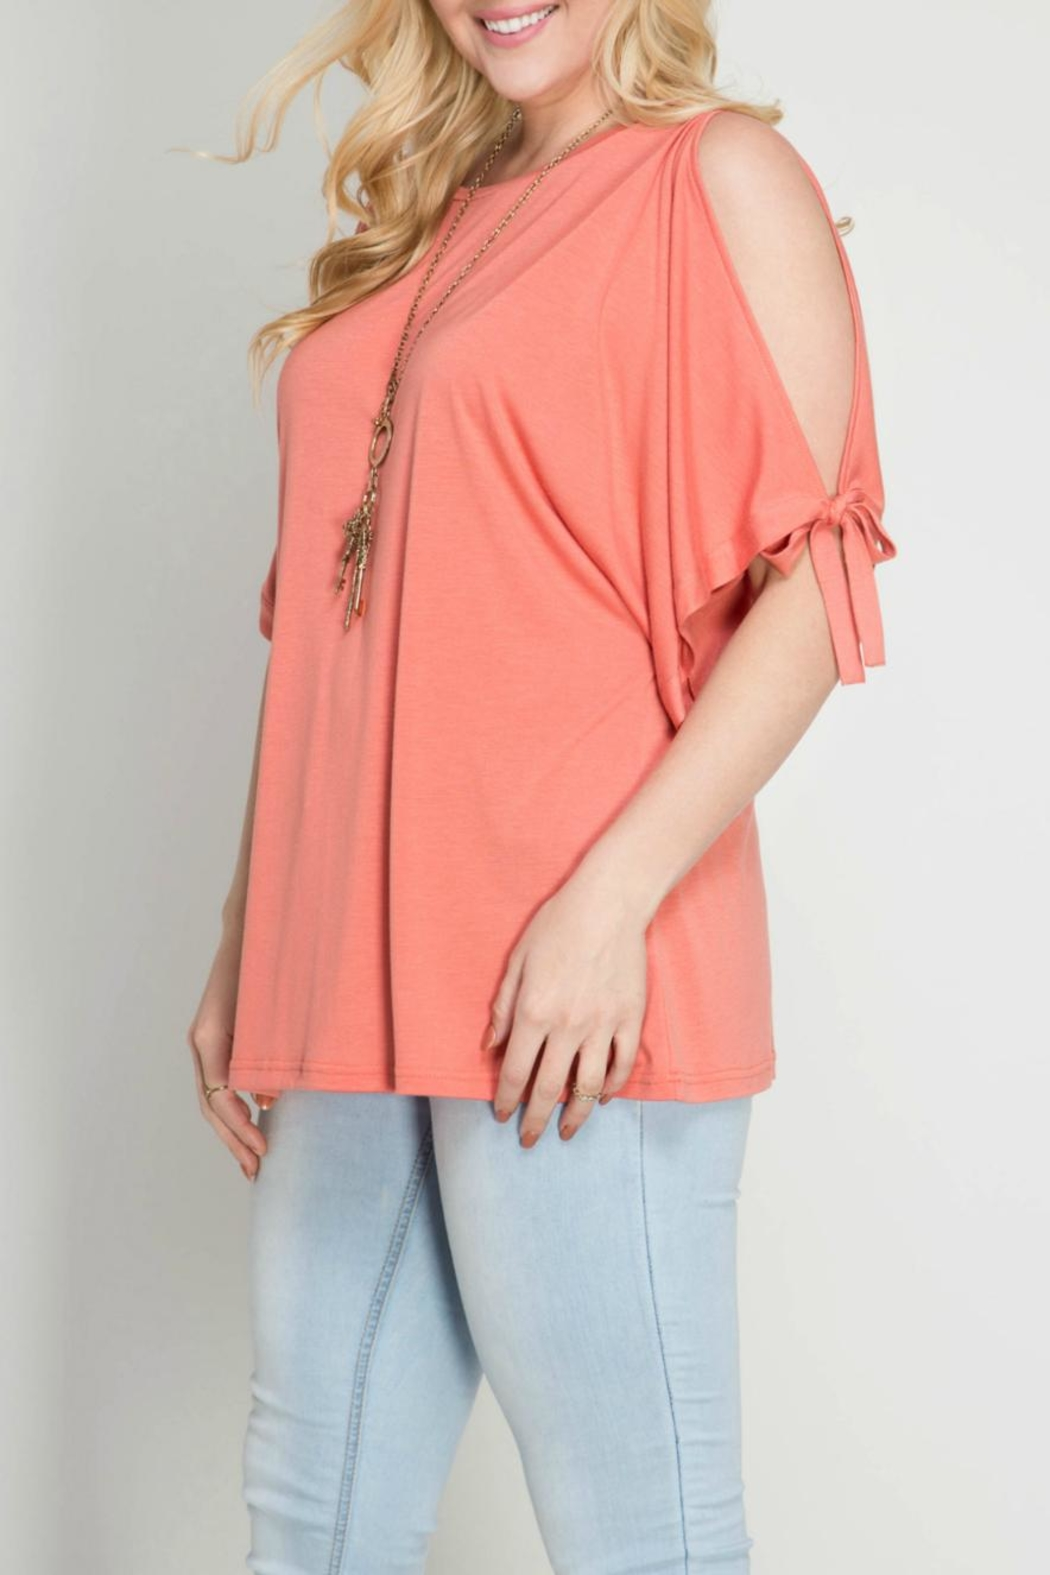 She + Sky Coral Open Shoulder Top - Side Cropped Image